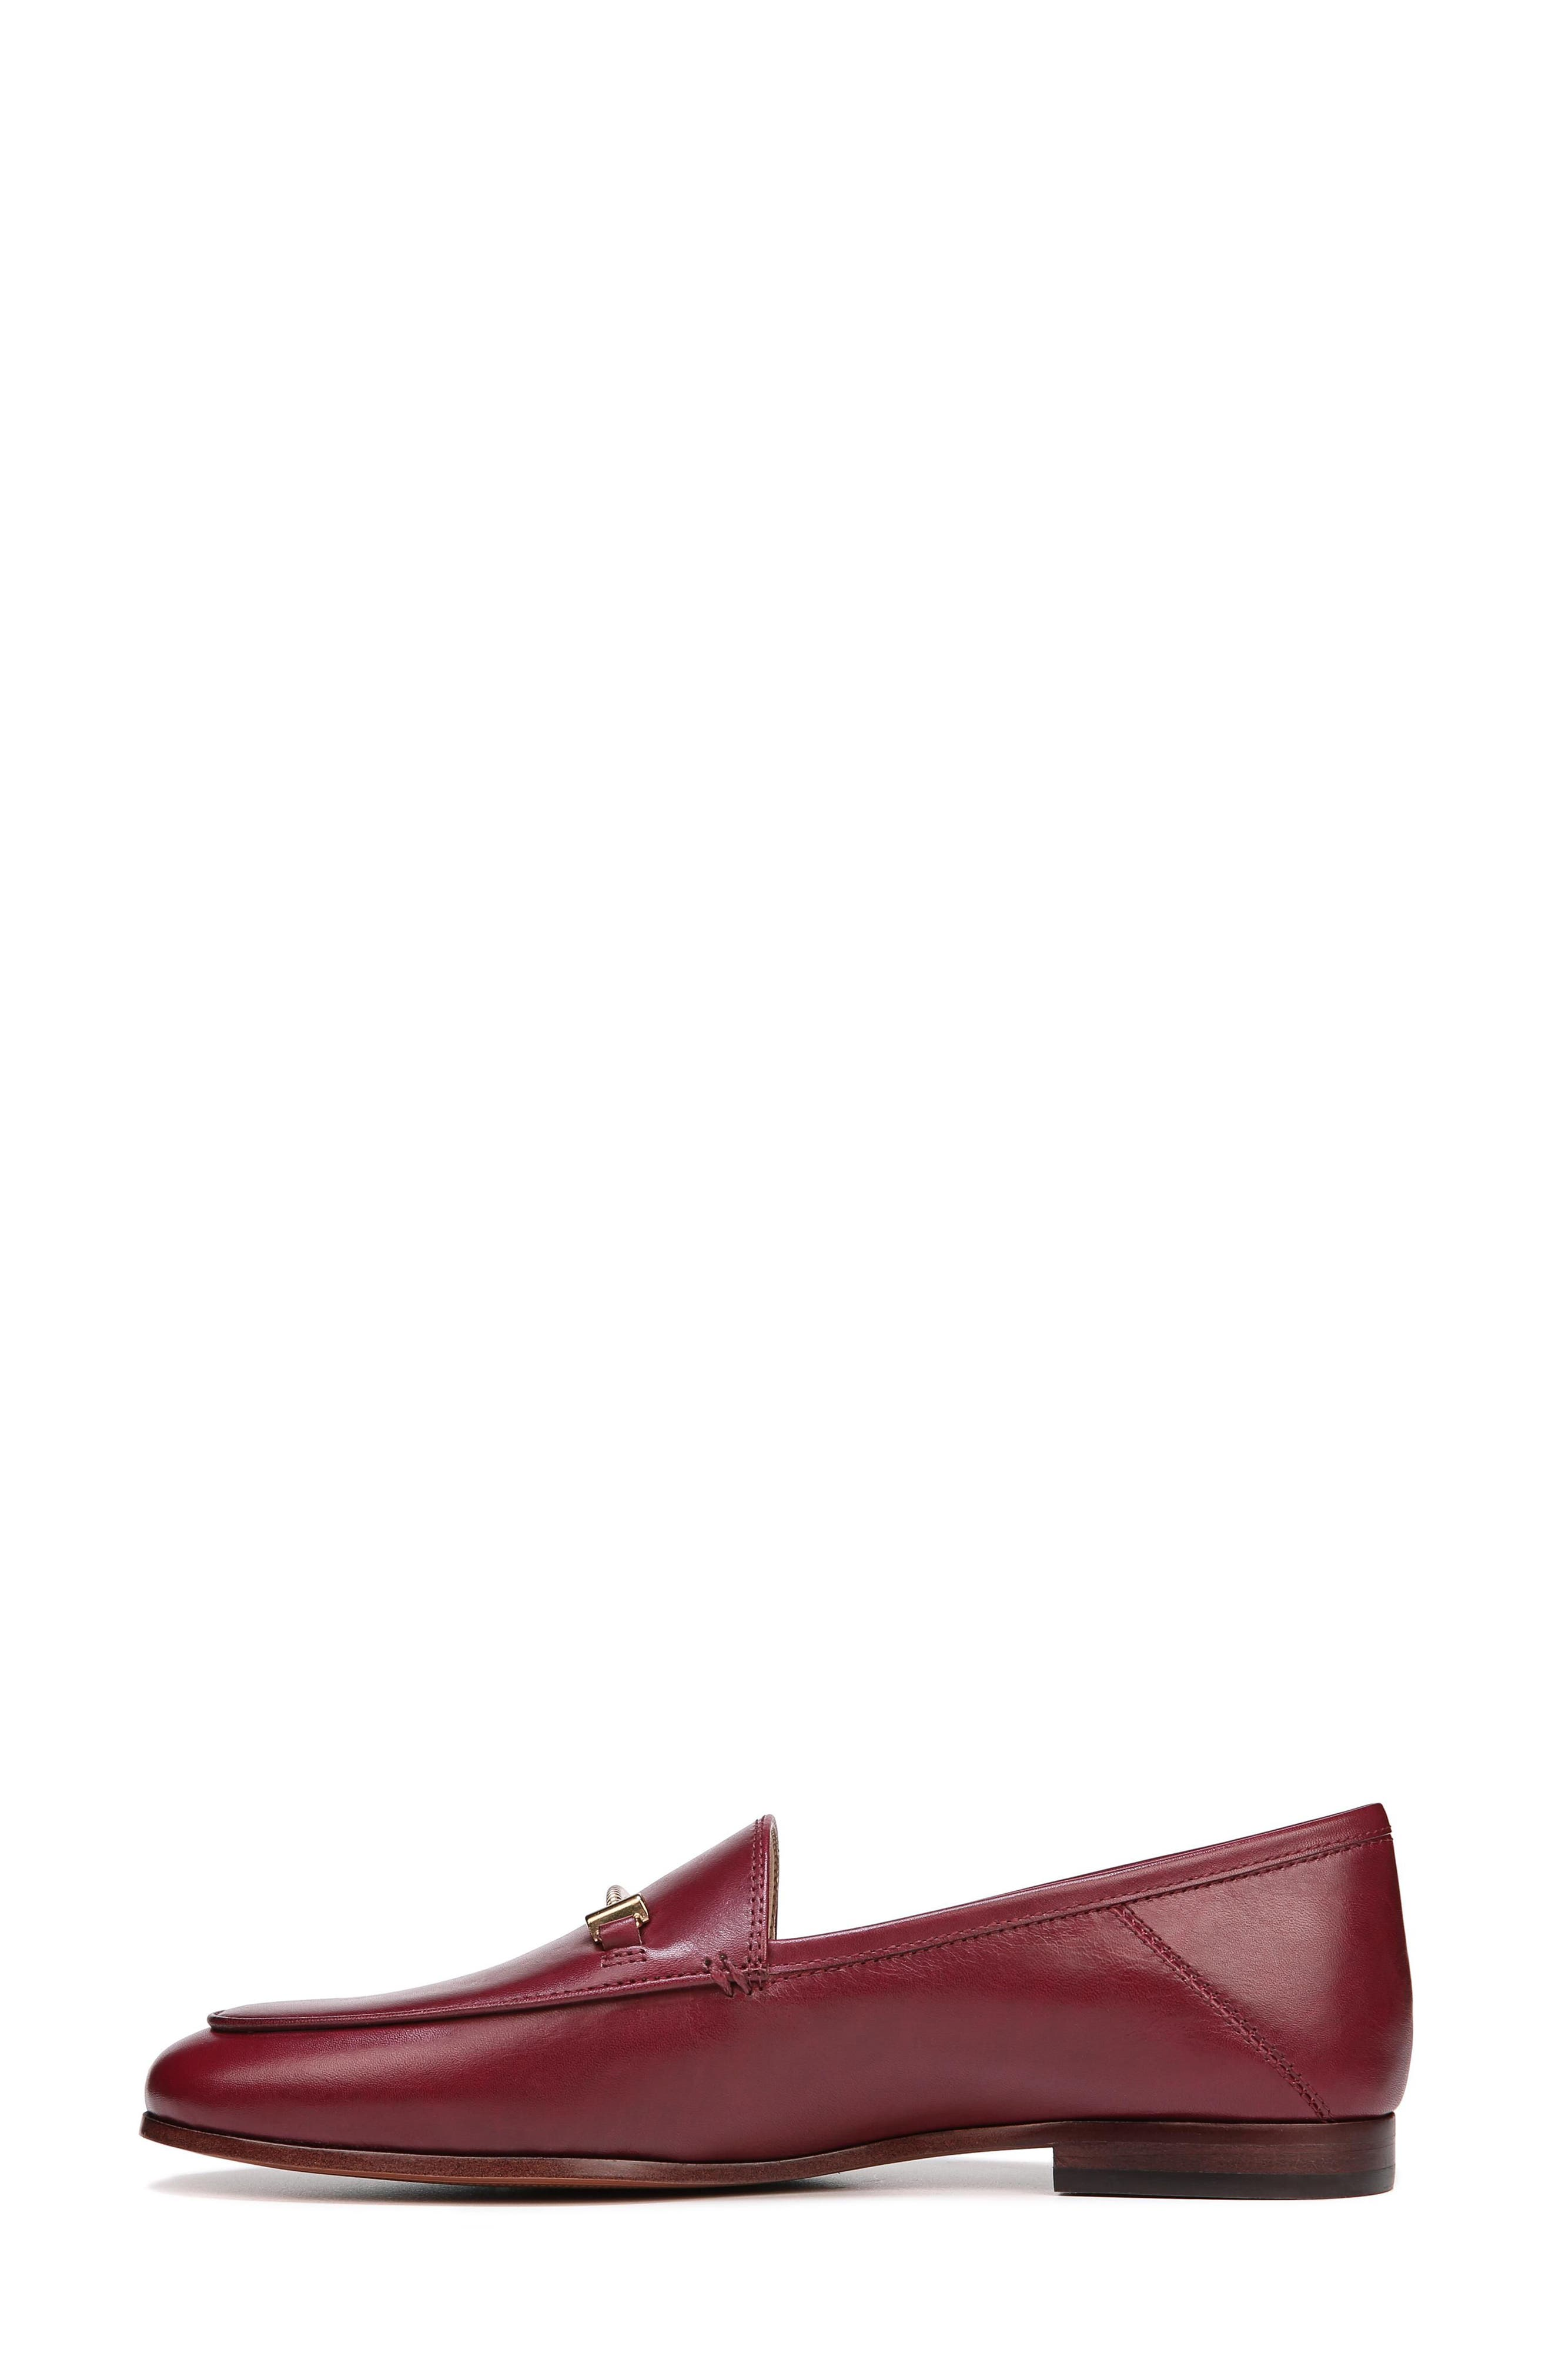 Lior Loafer,                             Alternate thumbnail 3, color,                             BEET RED LEATHER